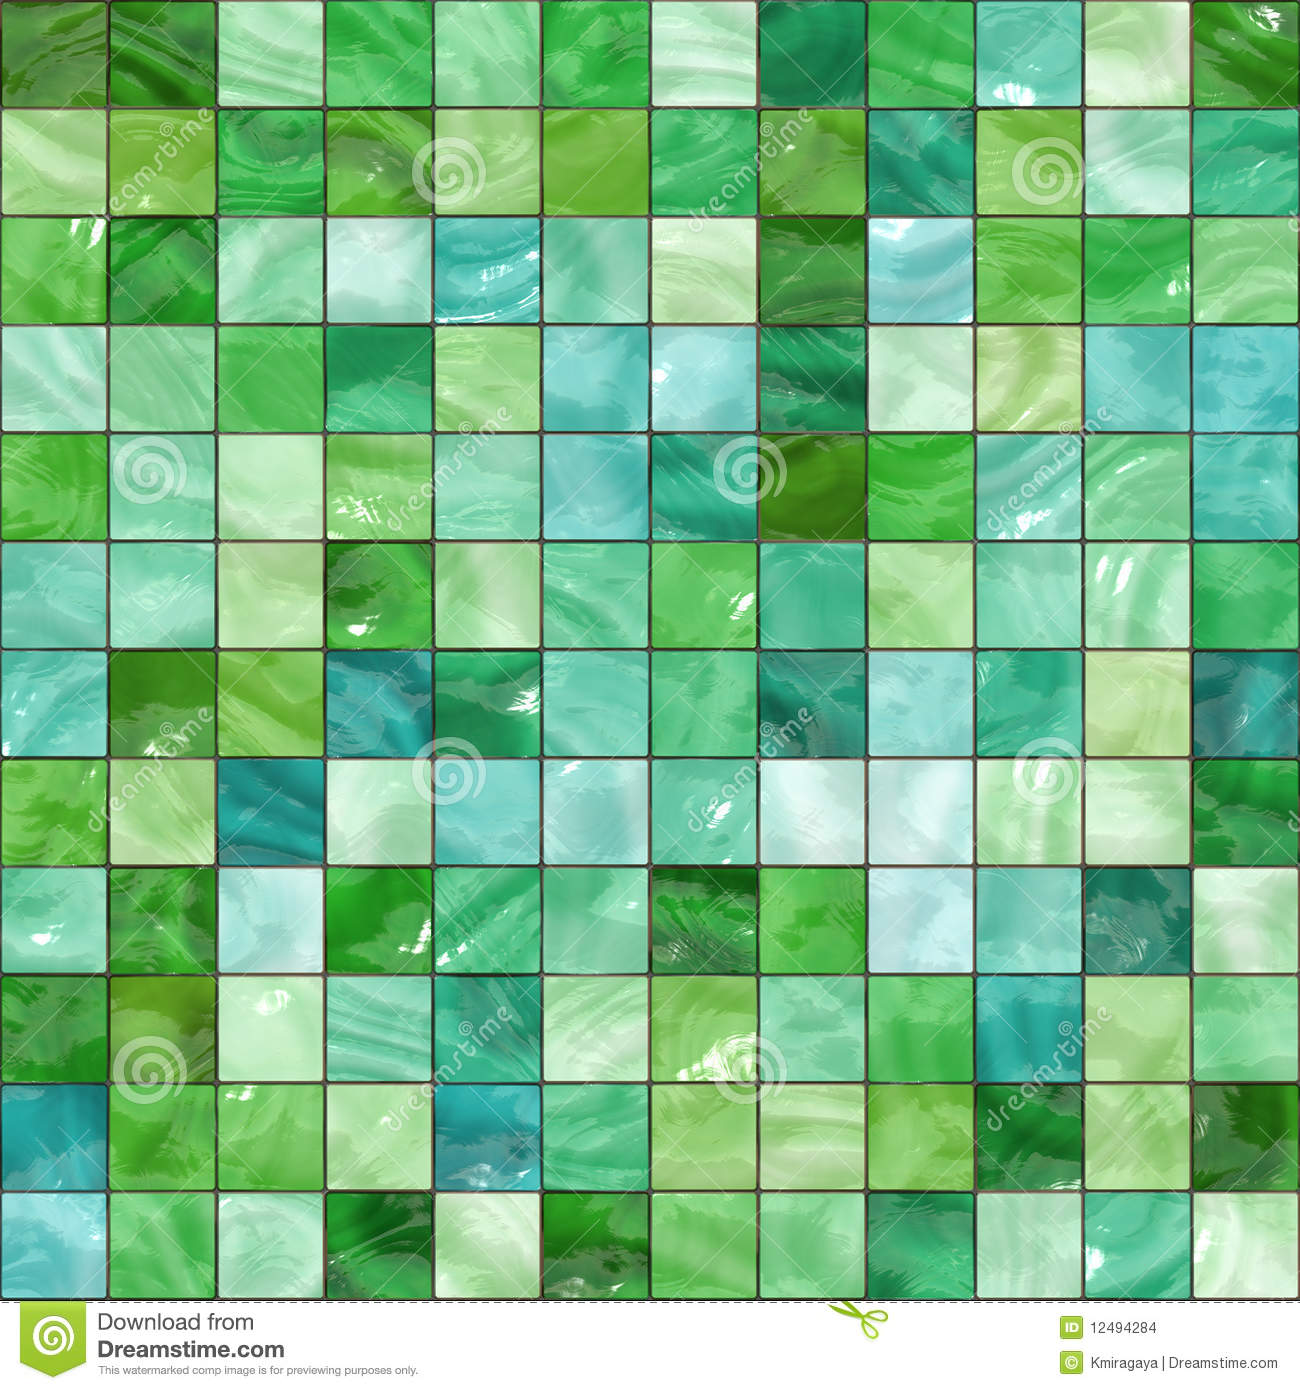 Seamless Green Tiles Texture Stock Illustration